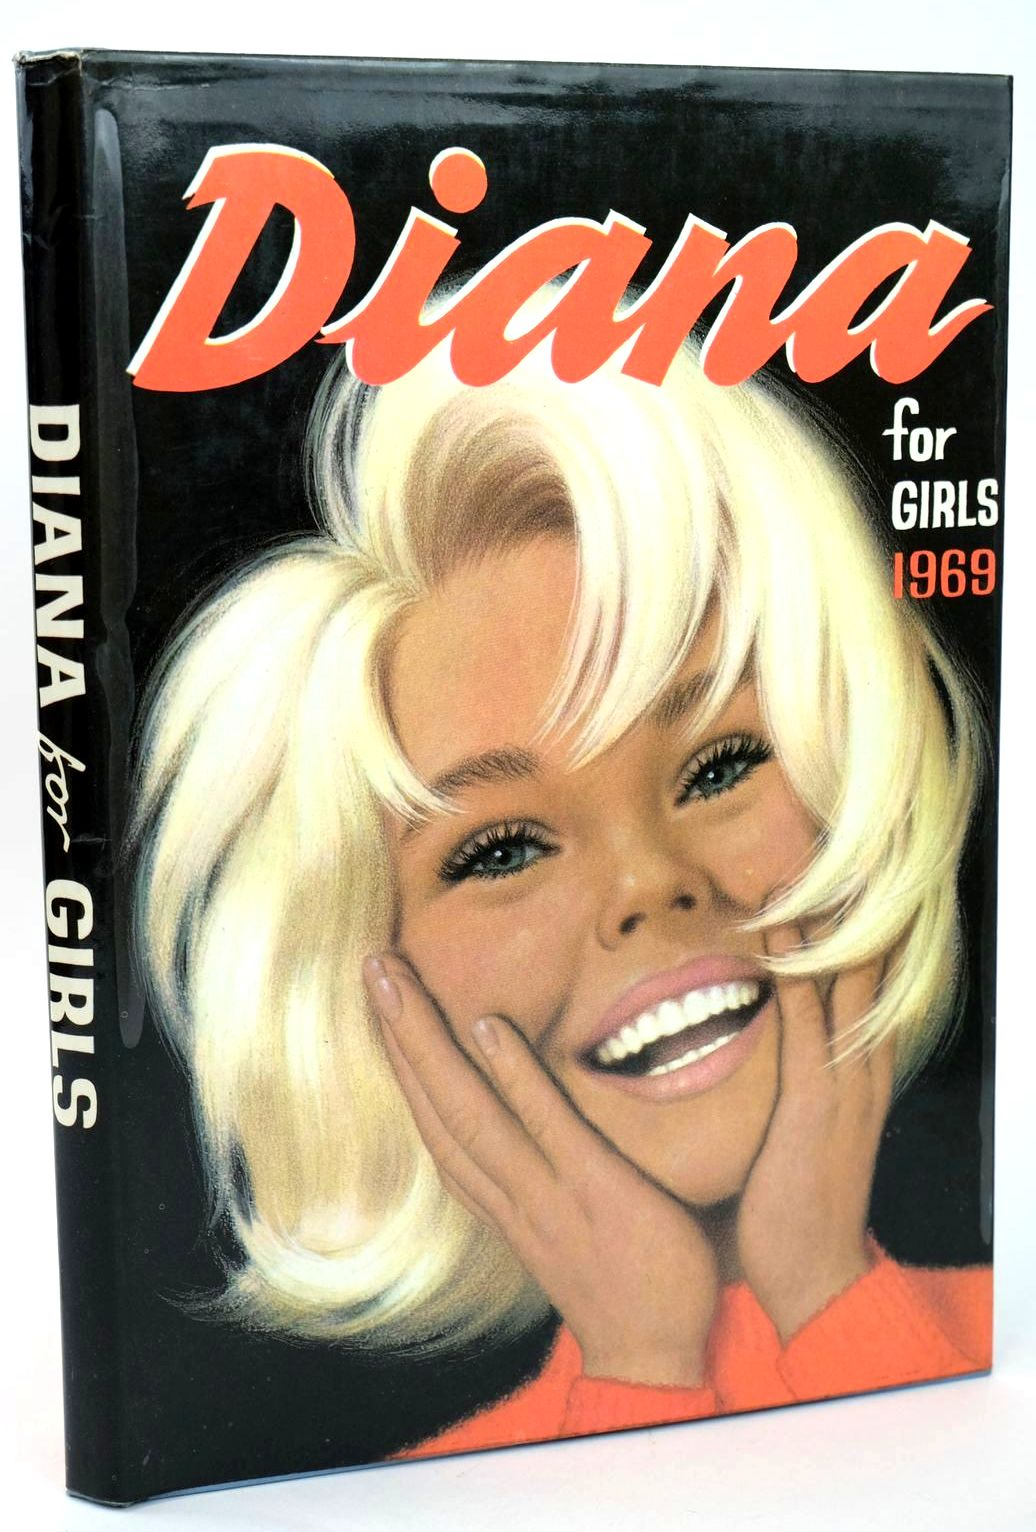 Photo of DIANA FOR GIRLS 1969 published by D.C. Thomson & Co Ltd. (STOCK CODE: 1318533)  for sale by Stella & Rose's Books